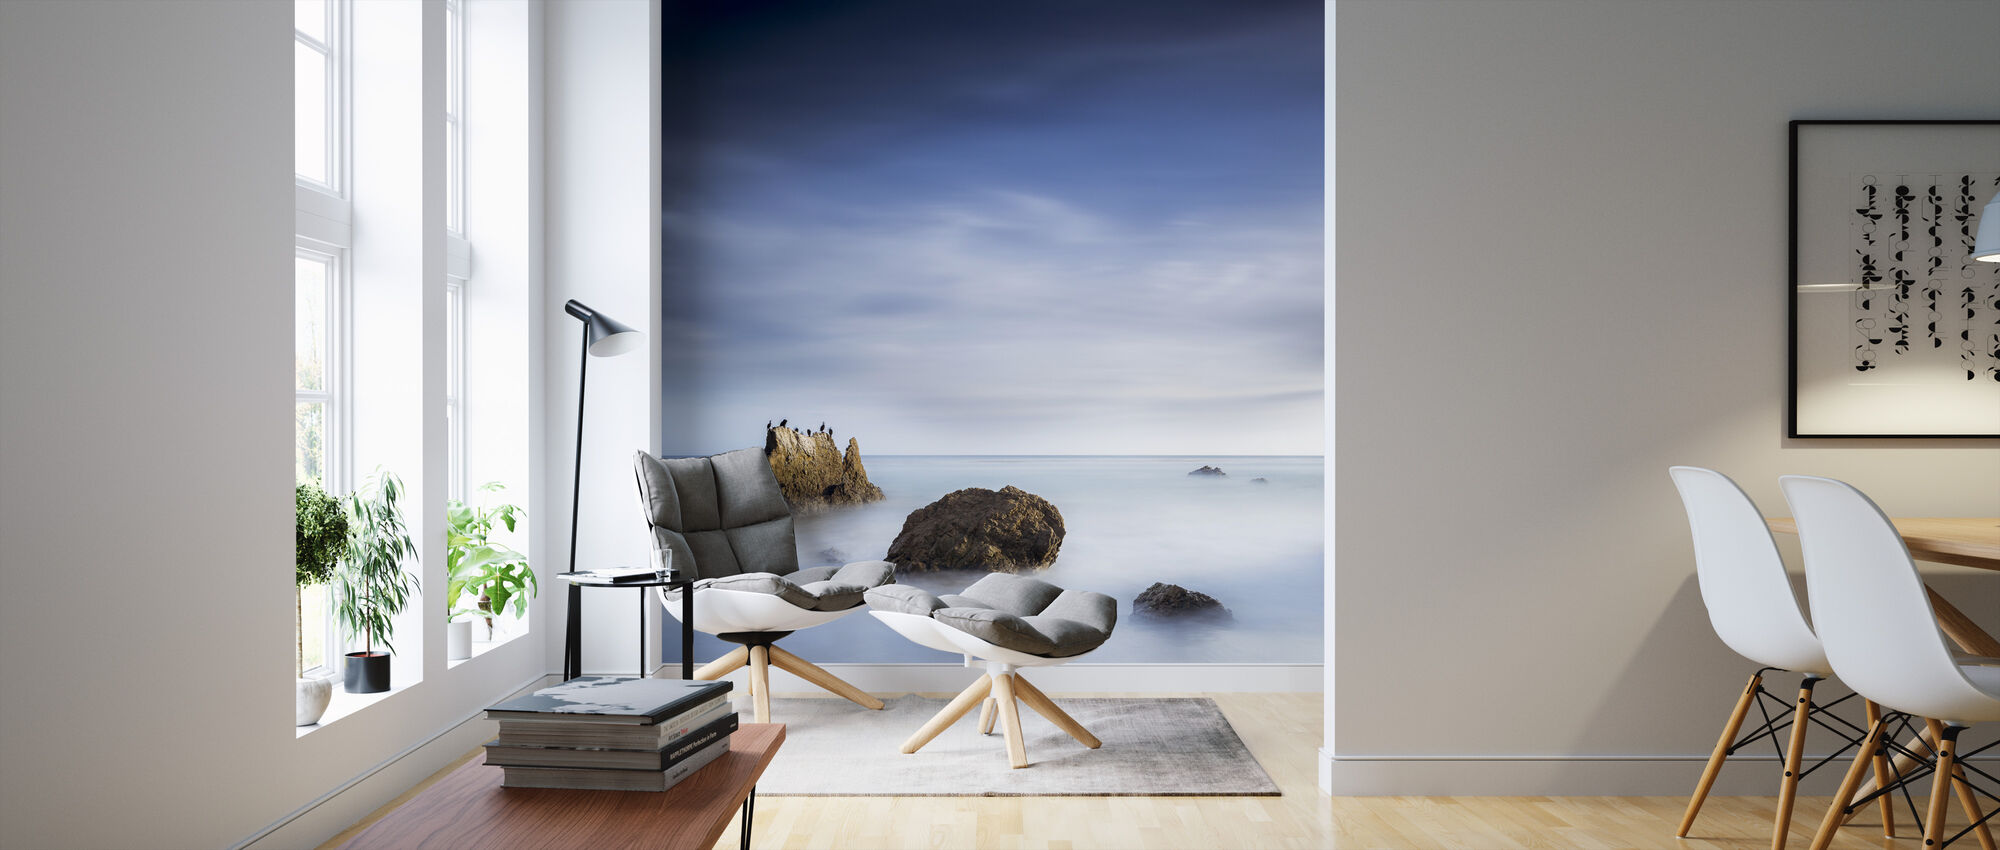 Misty Sea - Wallpaper - Living Room